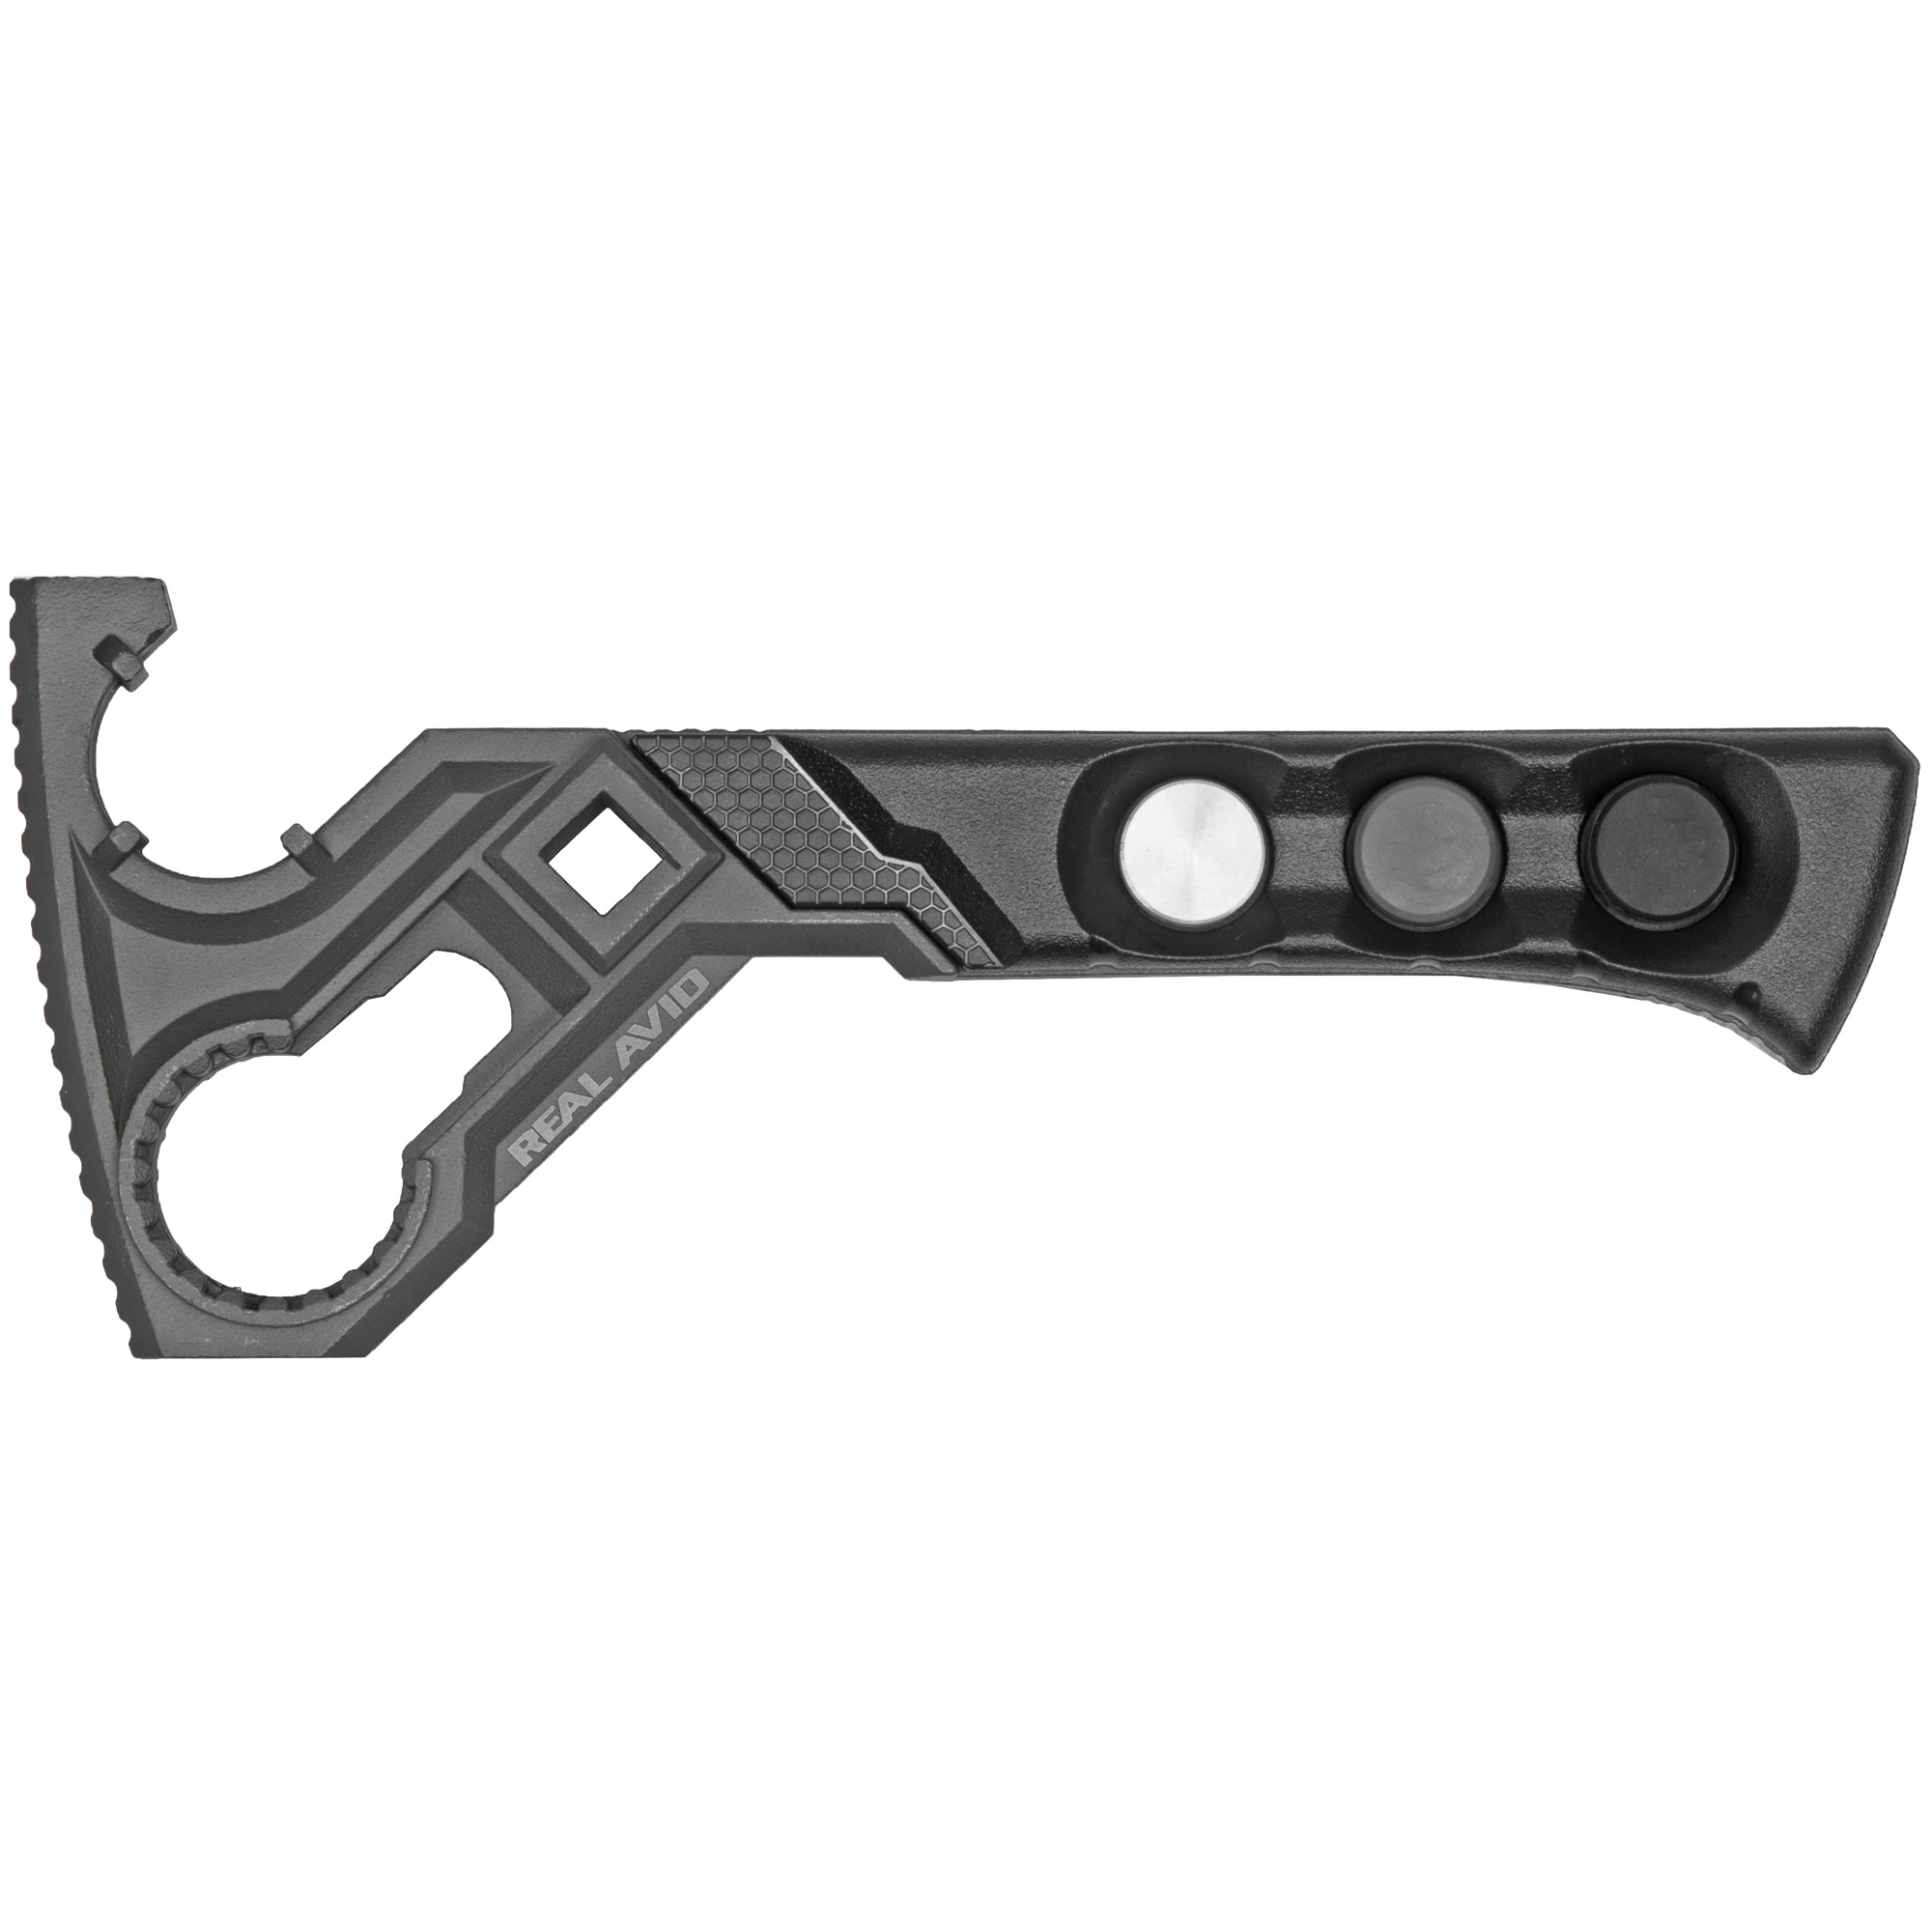 "When it comes to using the Armorer's Master Wrench(TM)"" think precision. The ergonomic handle gives you the ability to apply serious torque needed to remove stubborn"" crusted-on barrel or castle nuts without marring your firearm or stripping the nuts. The tool holds shape under pressure and has deep set sockets to grip your nuts and keep them gripped. The torque wrench attachment point allows you to apply accurate and critical torque adjustments to the barrel nuts"" castle nuts"" muzzle brakes"" flash suppressors"" and fixed stock receiver extensions. Plus"" this is the only tool in the category to include a fully-functional"" customizable armorer's hammer in the same tool."